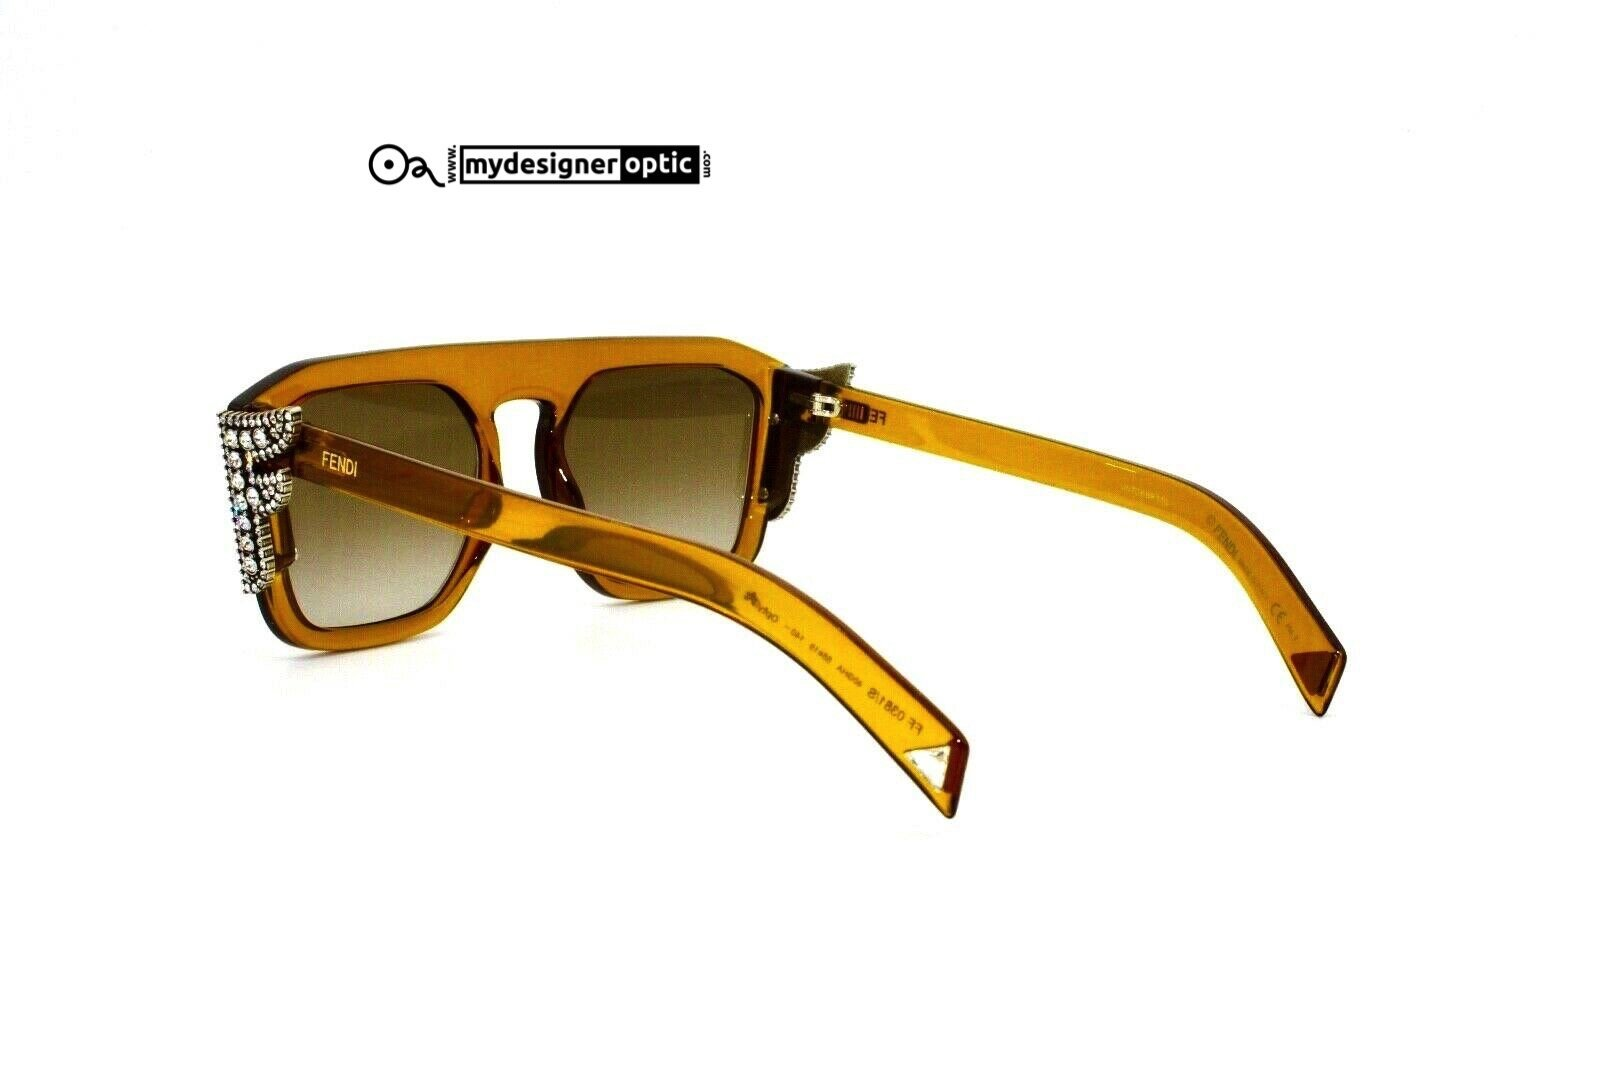 Fendi Sunglasses FF 0381/S 40GHA 55-19 140 Optyl Made in Italy - Mydesigneroptic